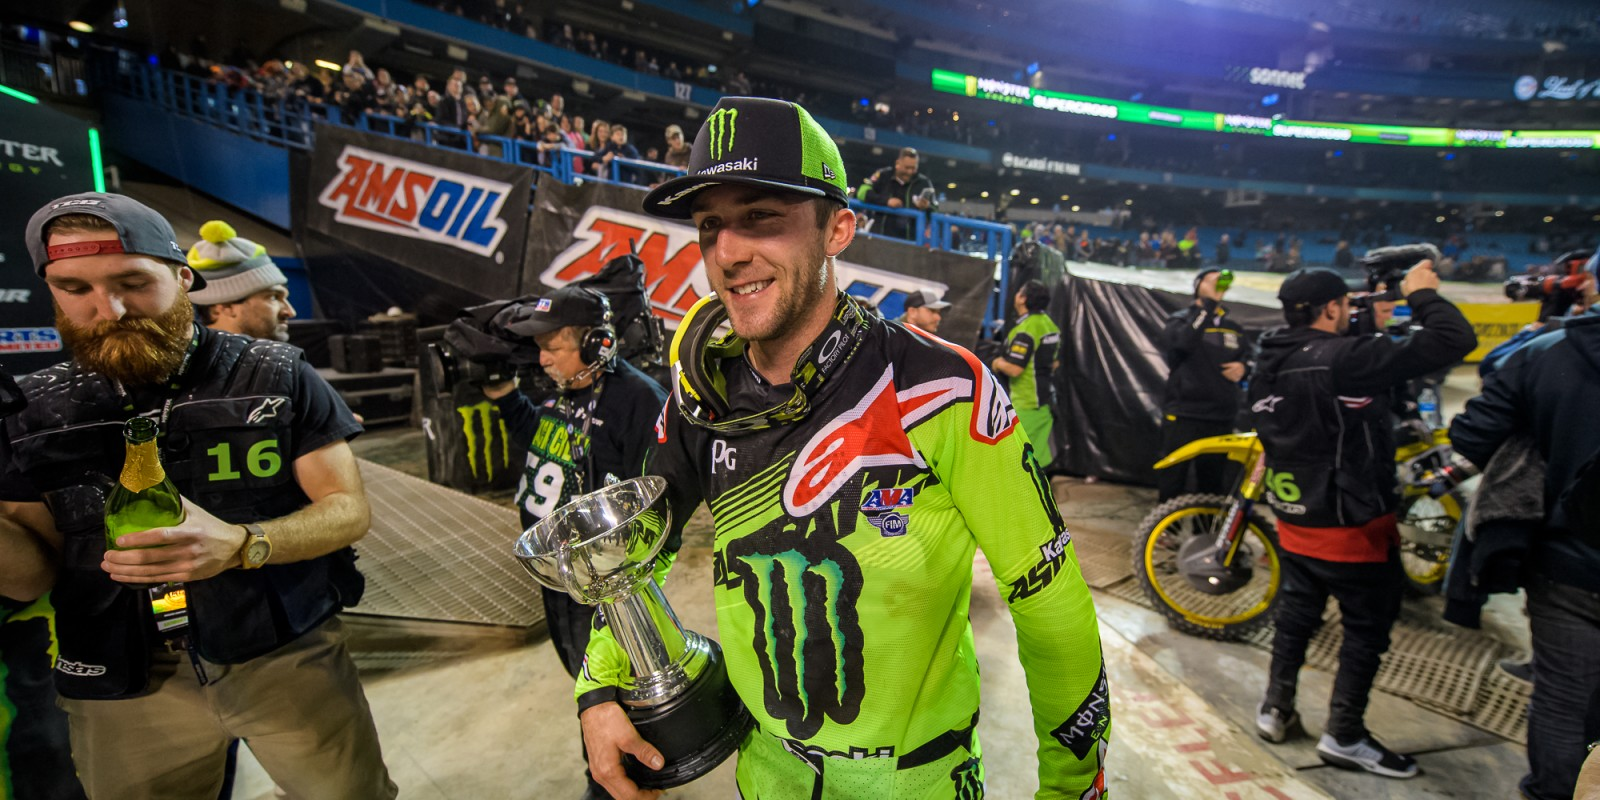 Monster riders at the 2017 Supercross in Toronto, Canada